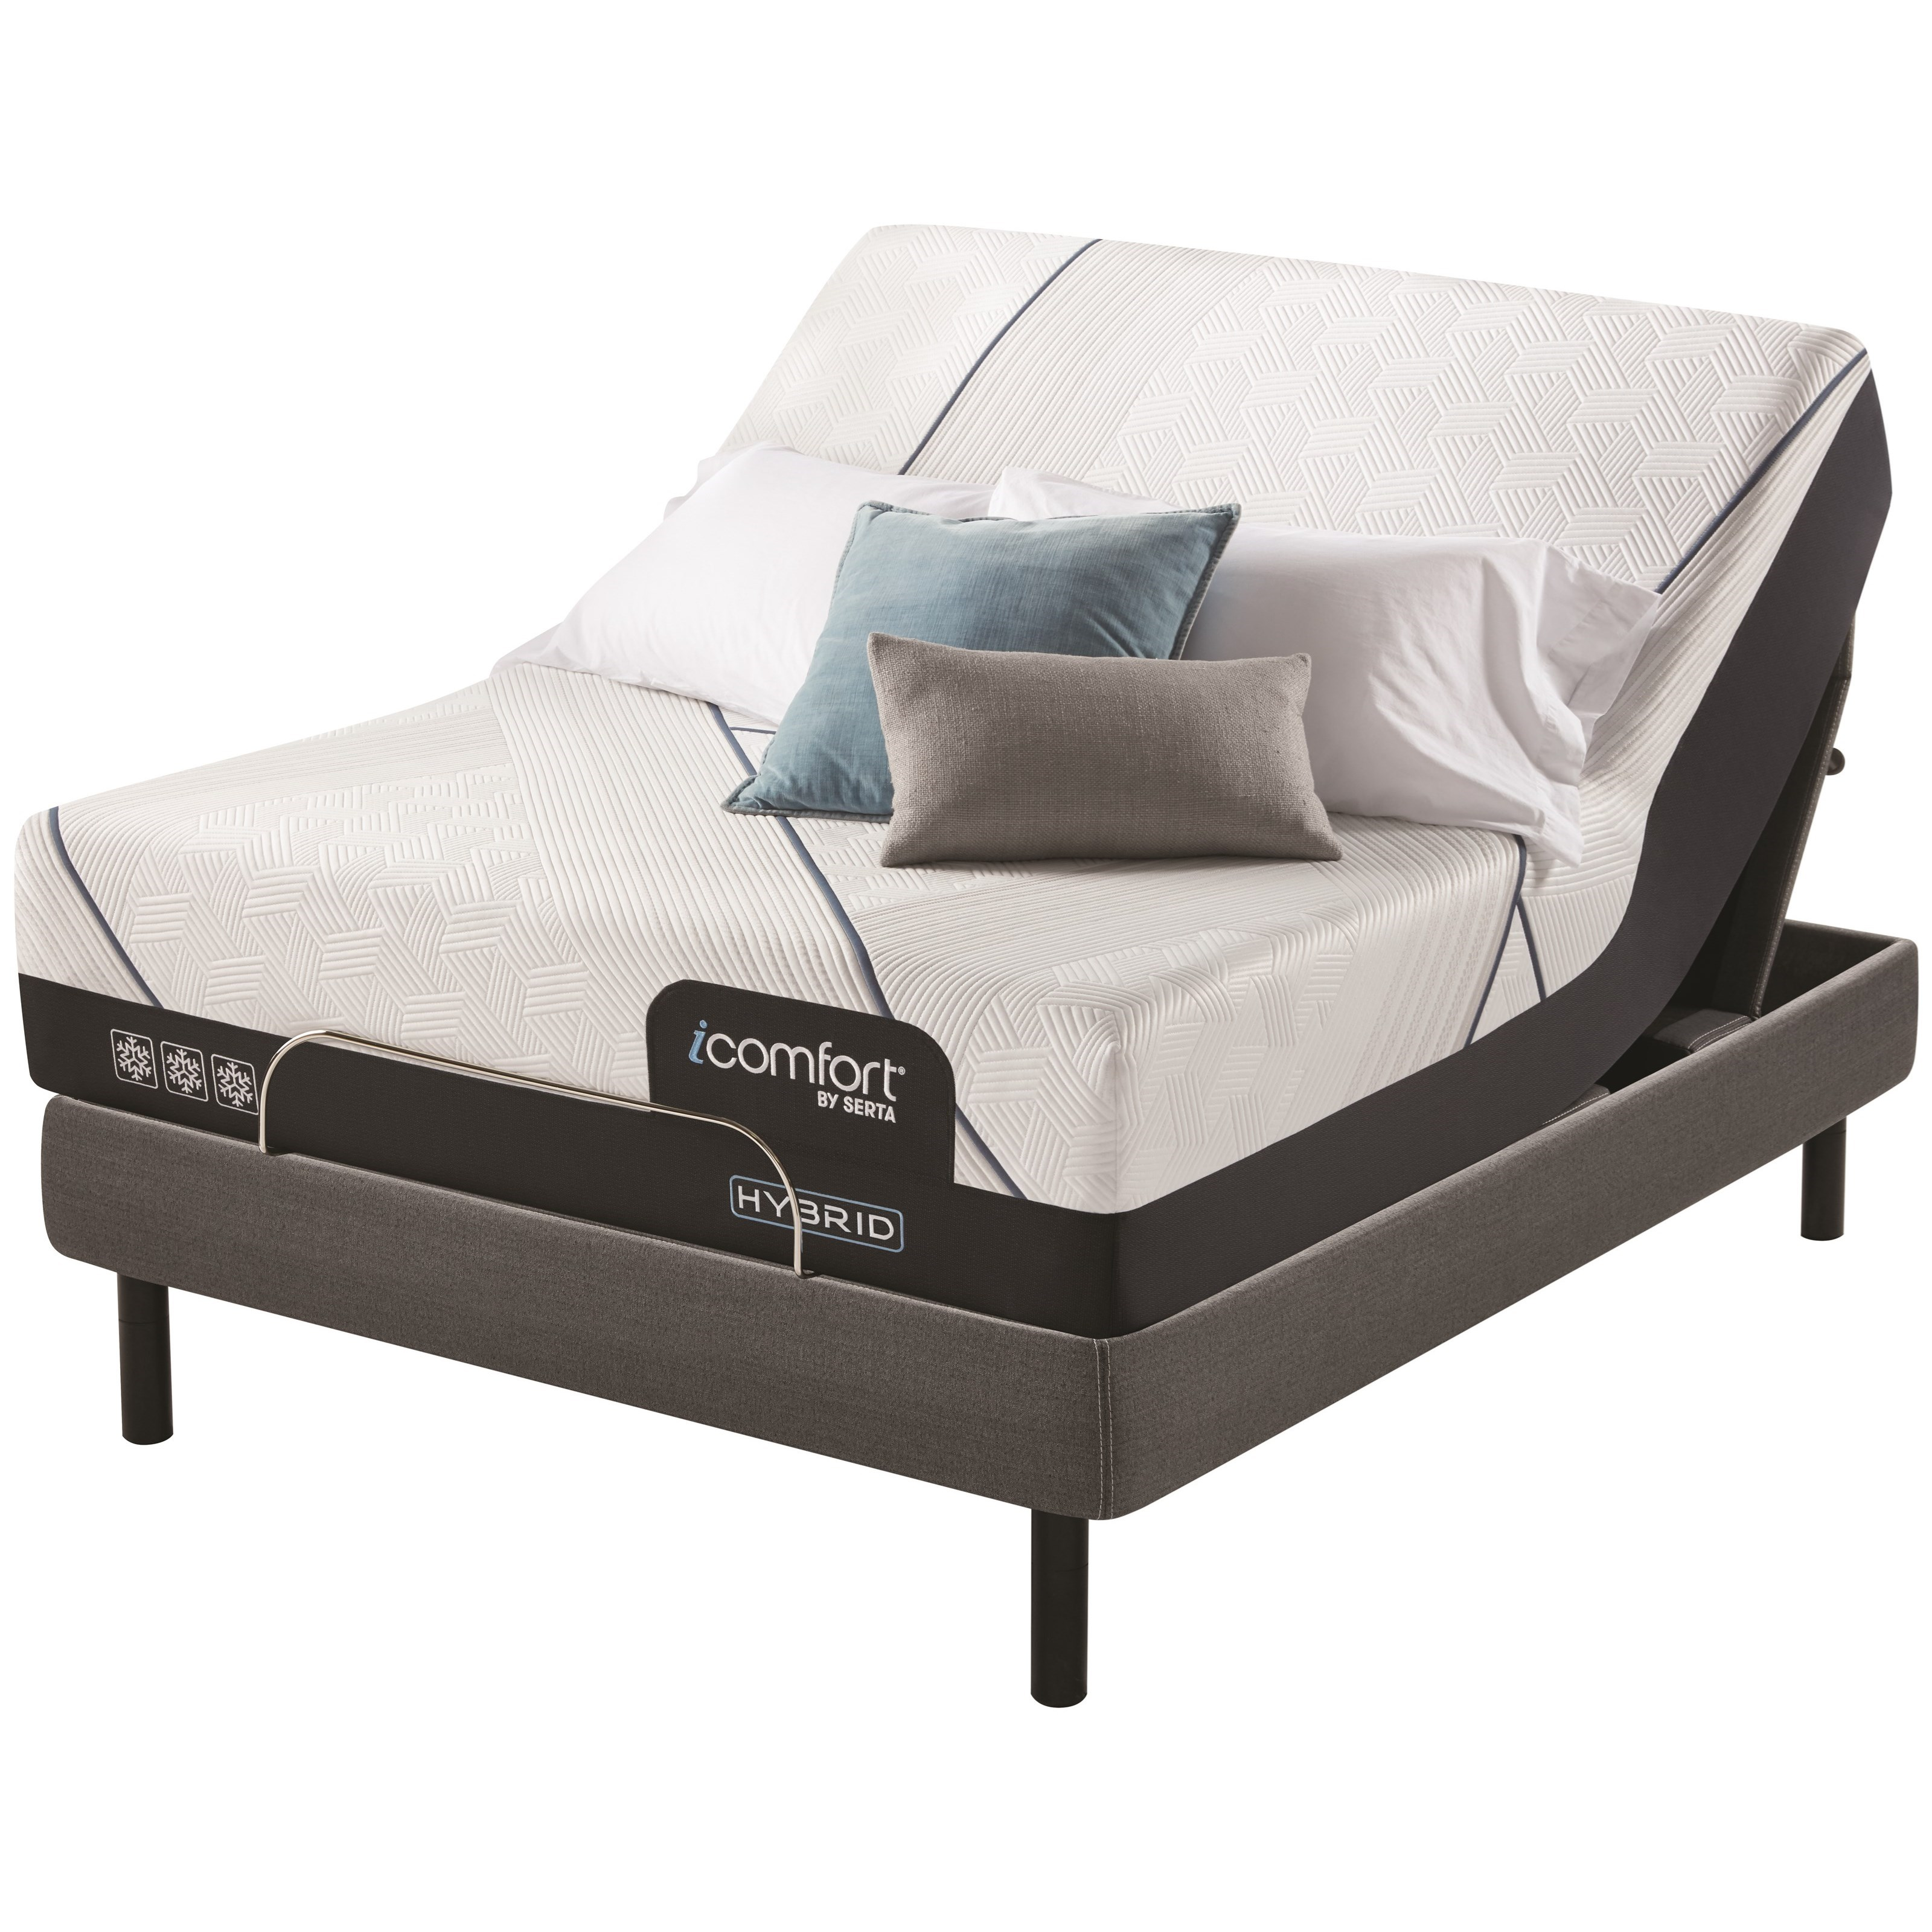 "CF4000 Hybrid Plush Twin XL 14"" Plush Hybrid Adj Set by Serta at Miller Waldrop Furniture and Decor"